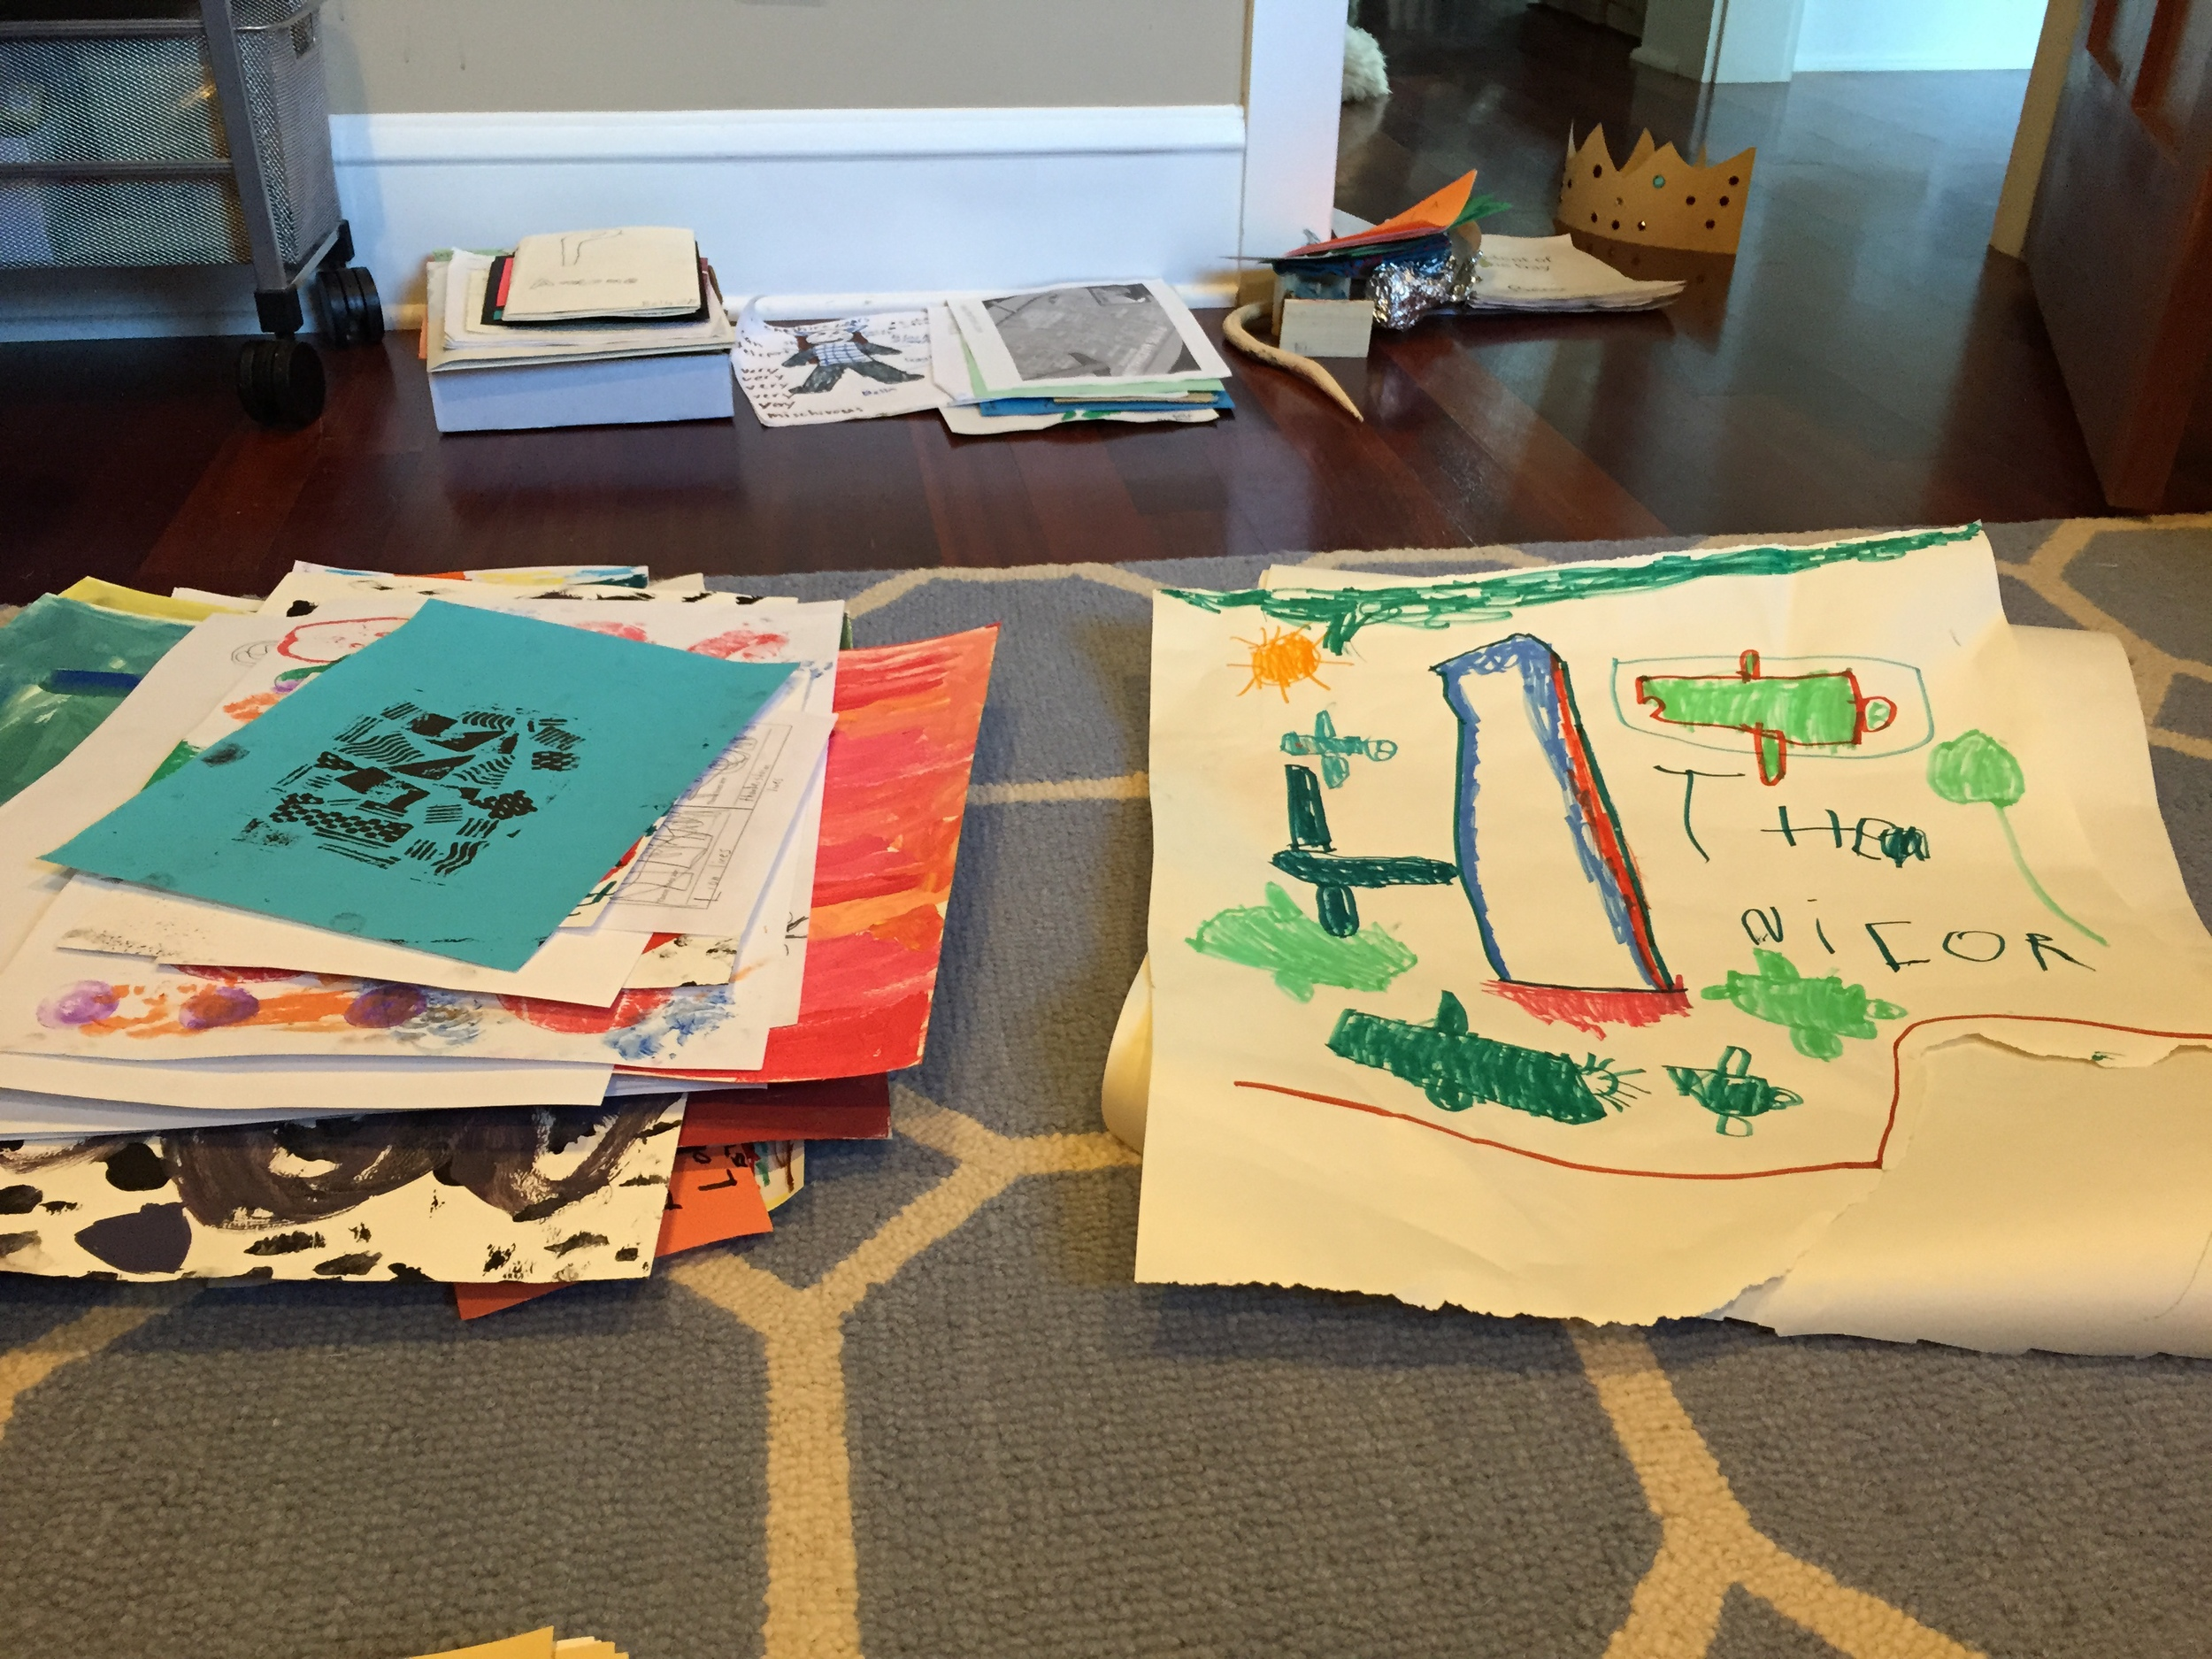 Two piles: one pile is artwork from my daughter and one from my son. These piles have artwork that will be given away.